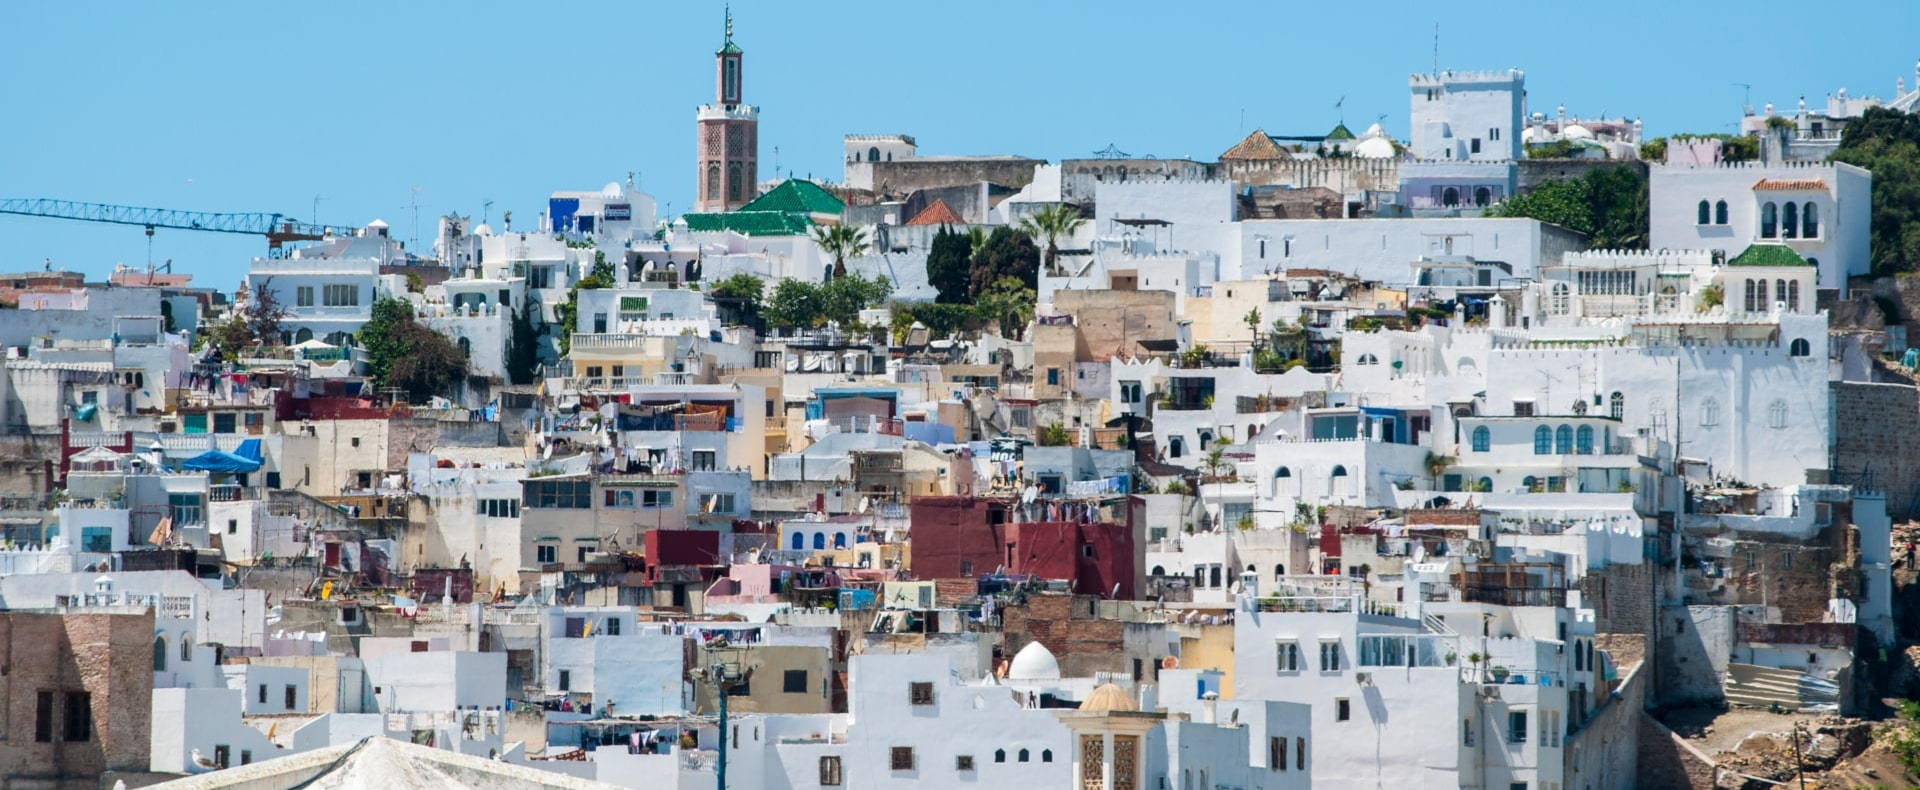 Tangier, Morocco